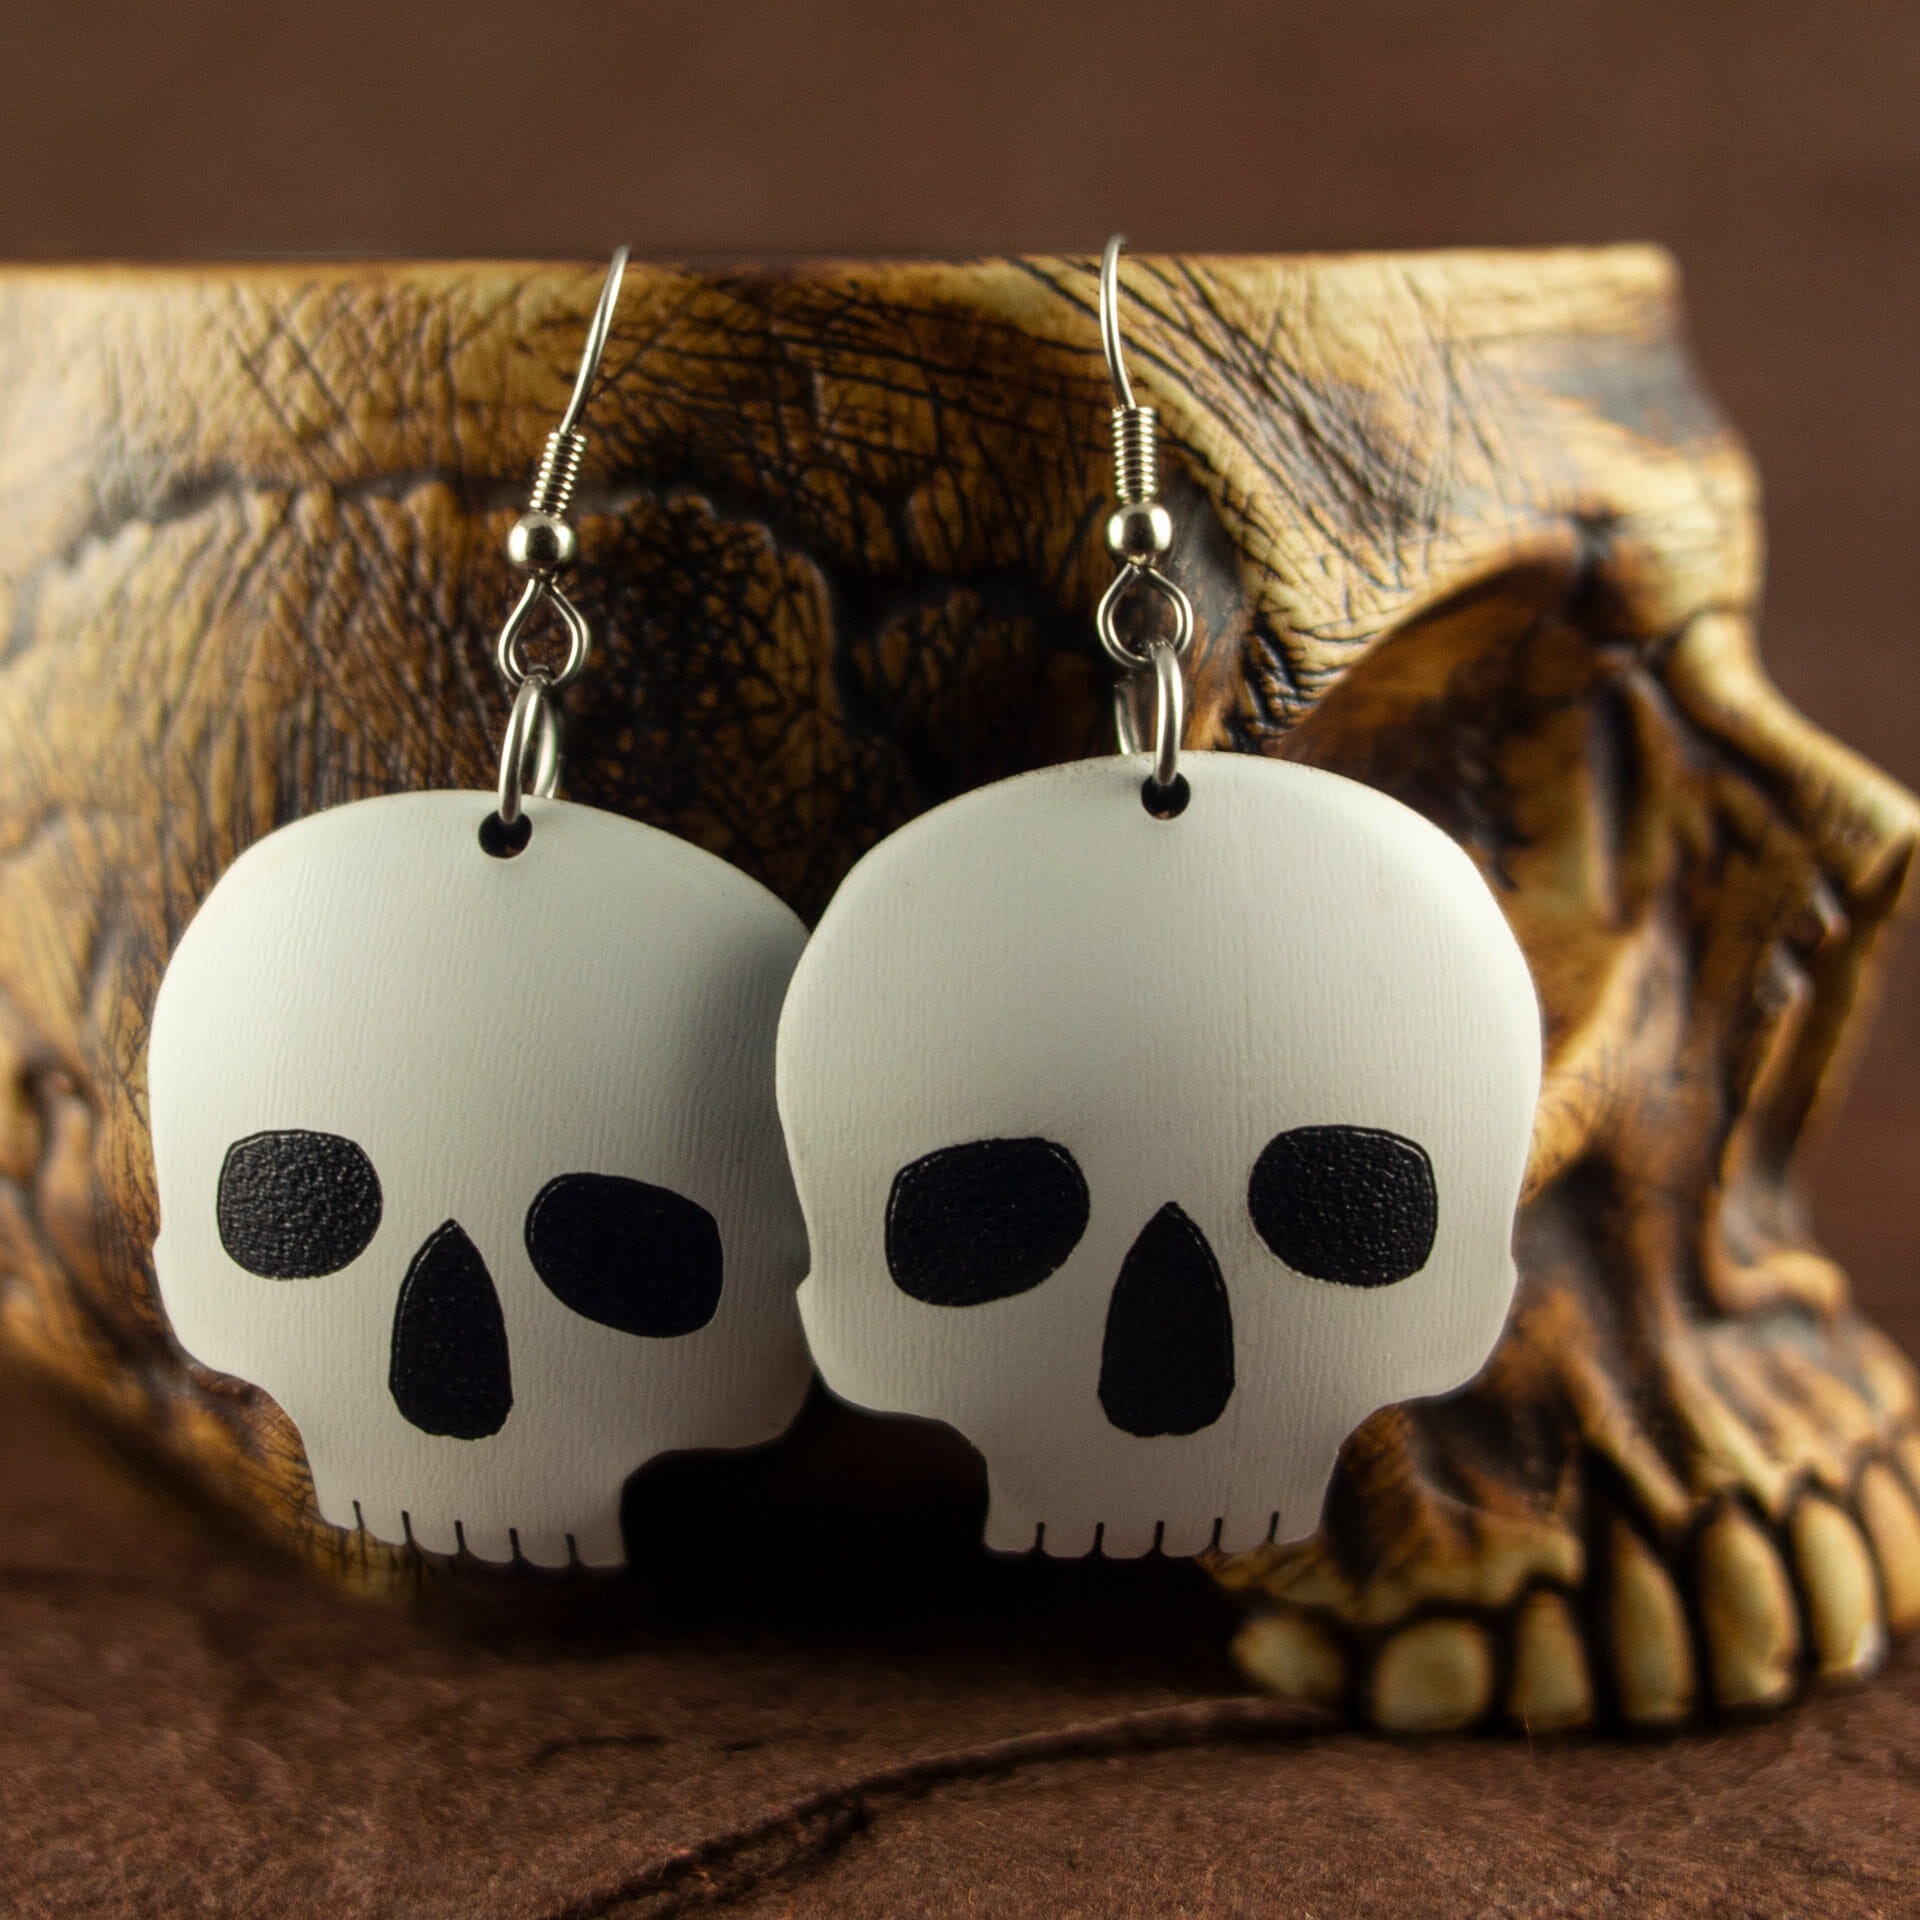 Two-Toned Dished Acrylic Skull Earrings